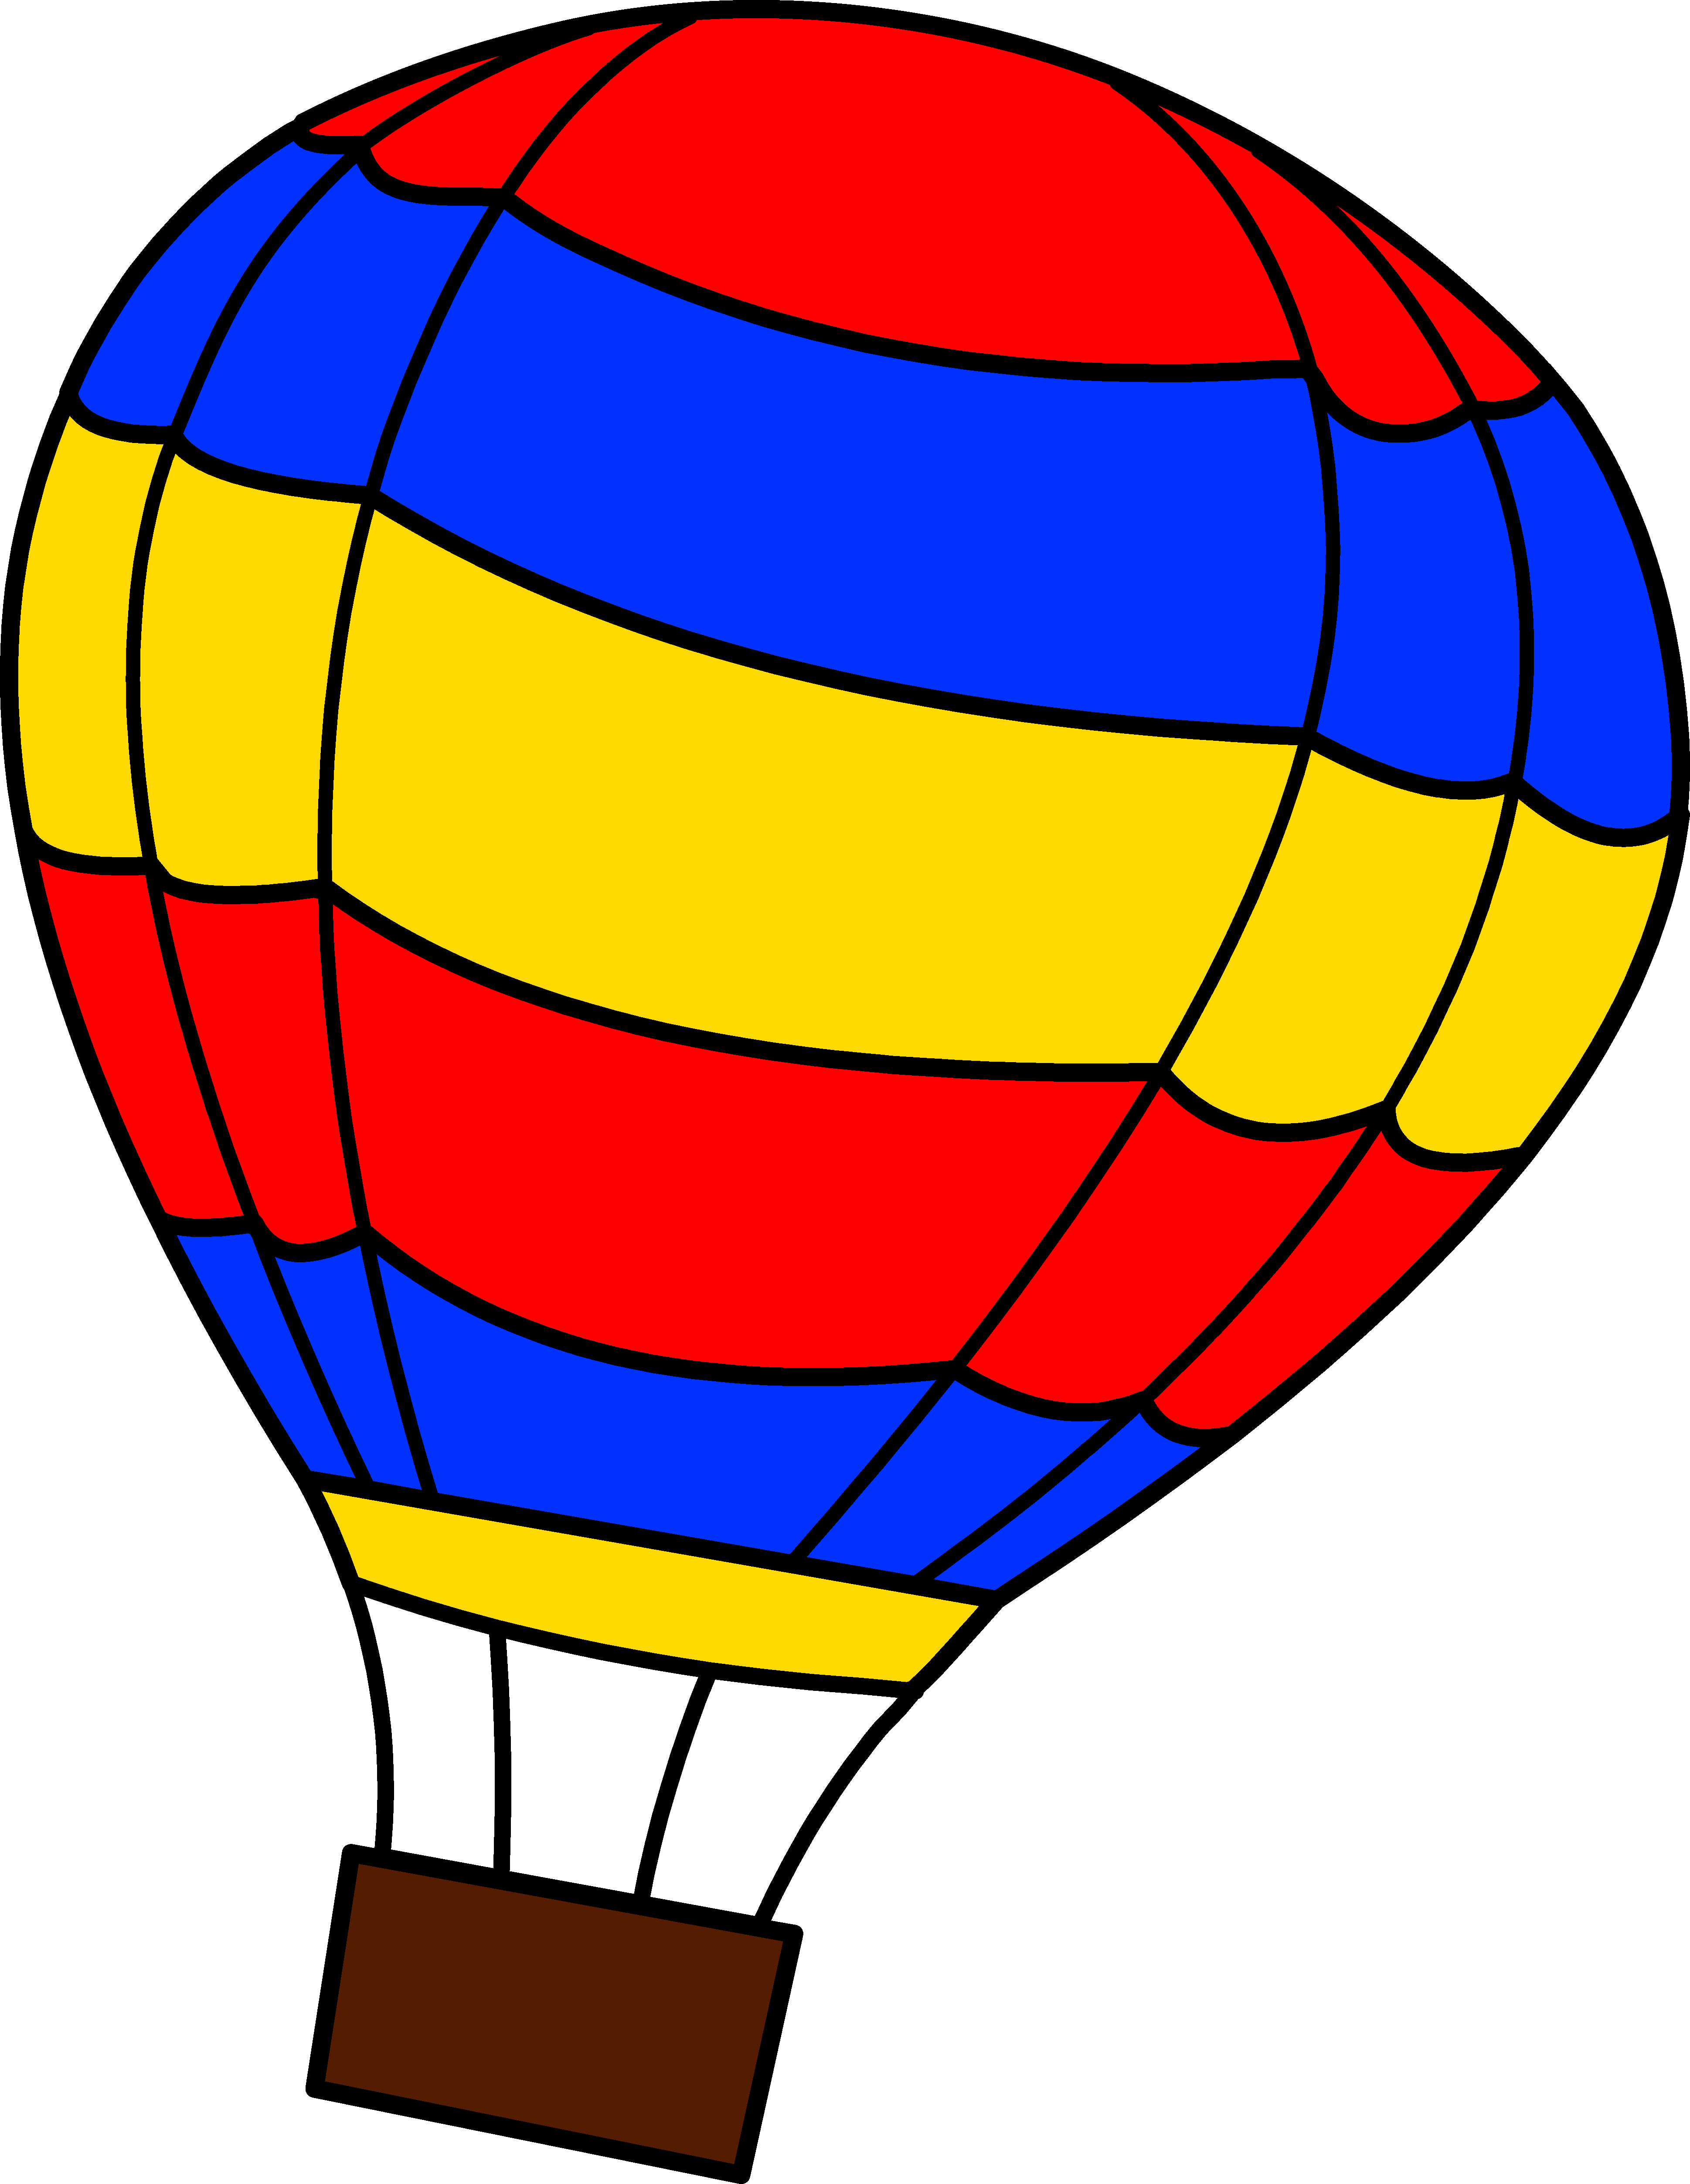 Balloon Images Clip Art Free - Cliparts.co